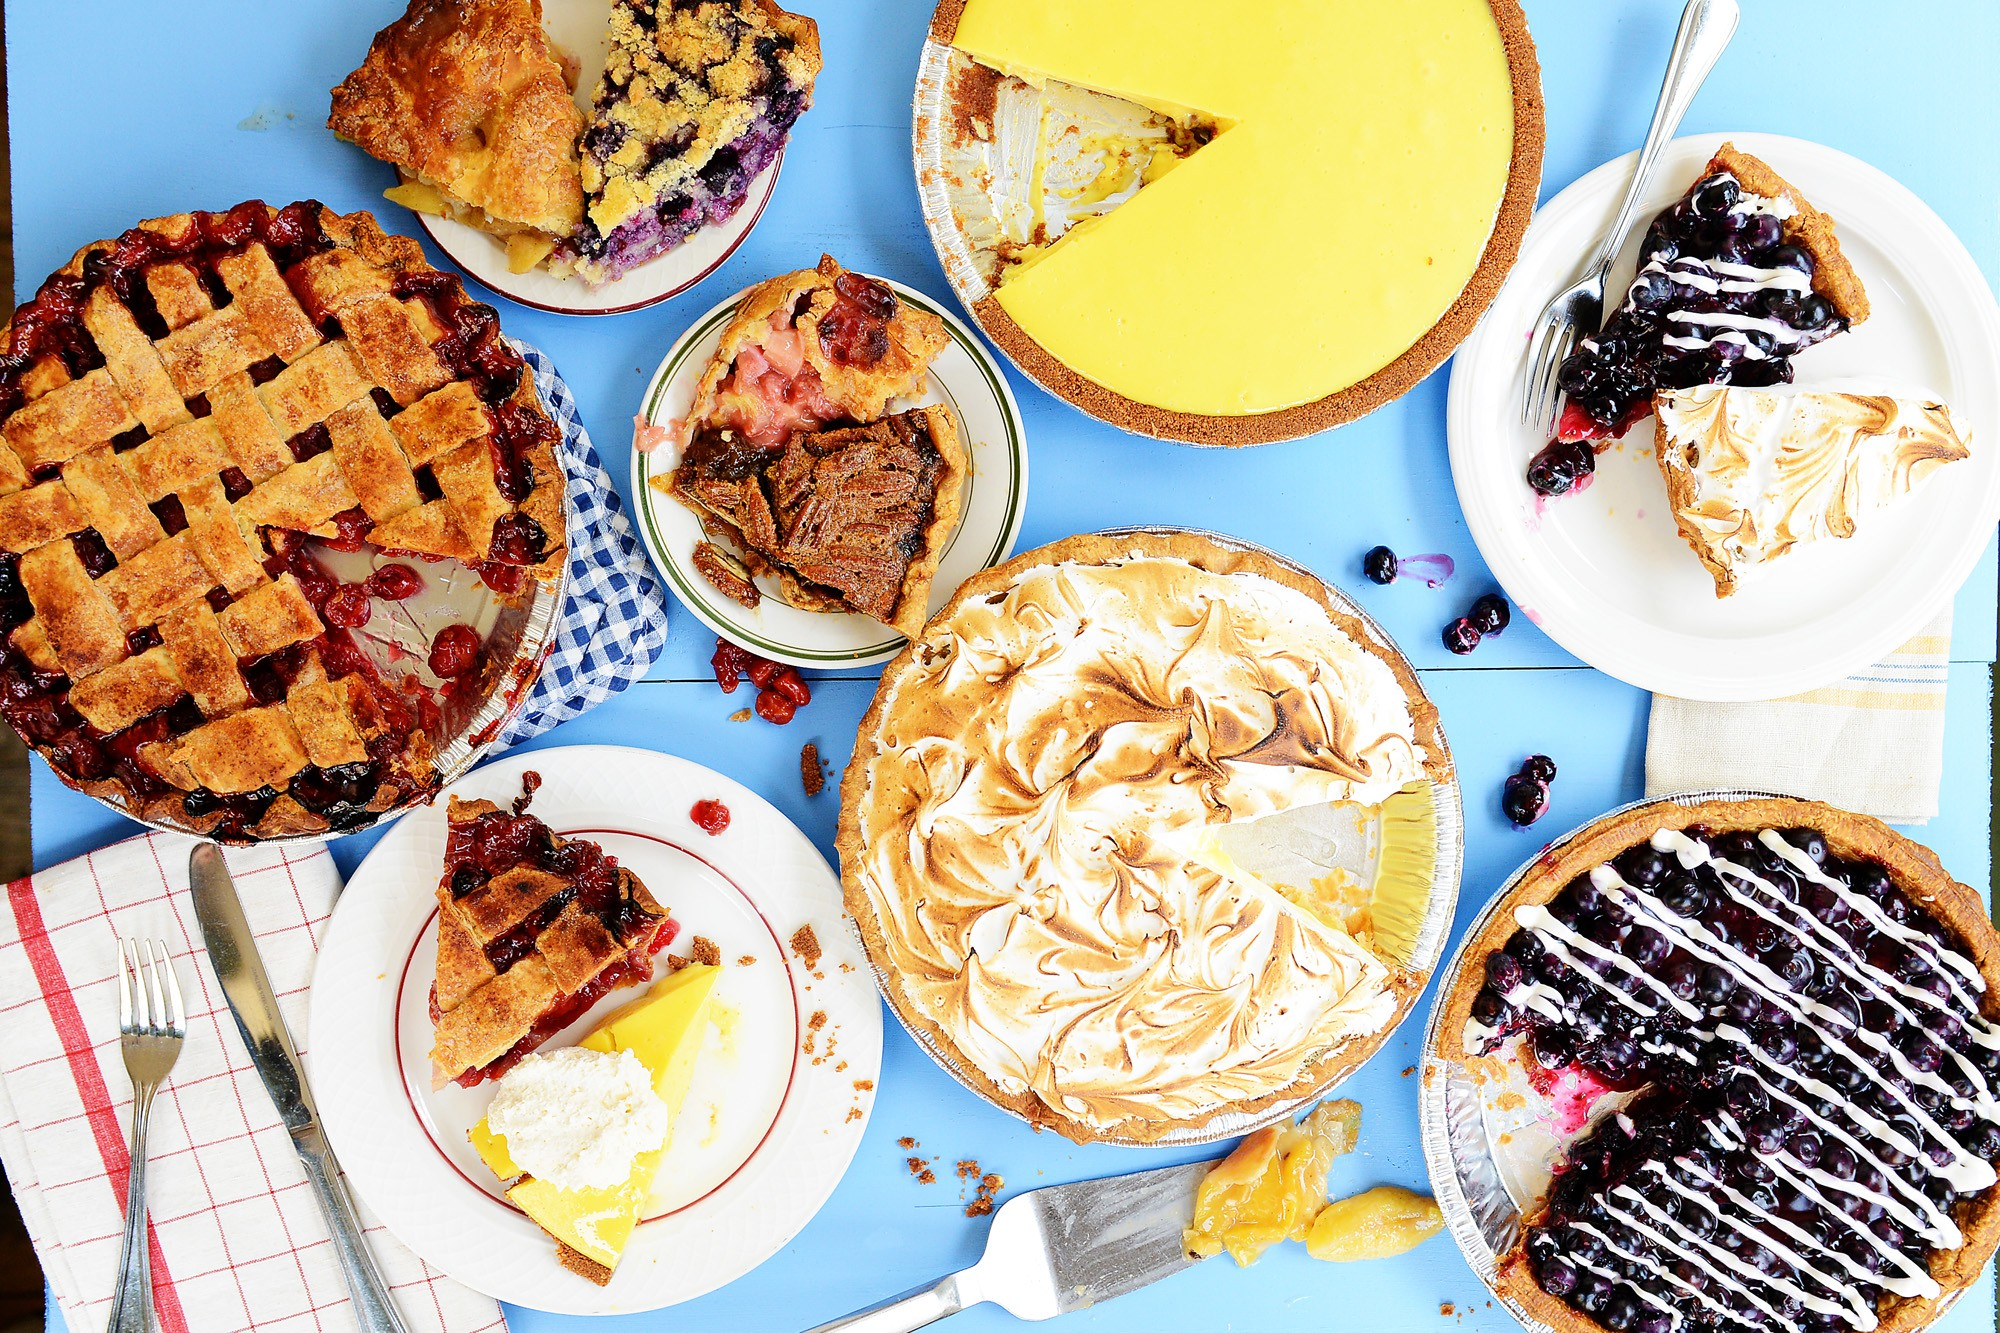 An assortment of pies on a blue background